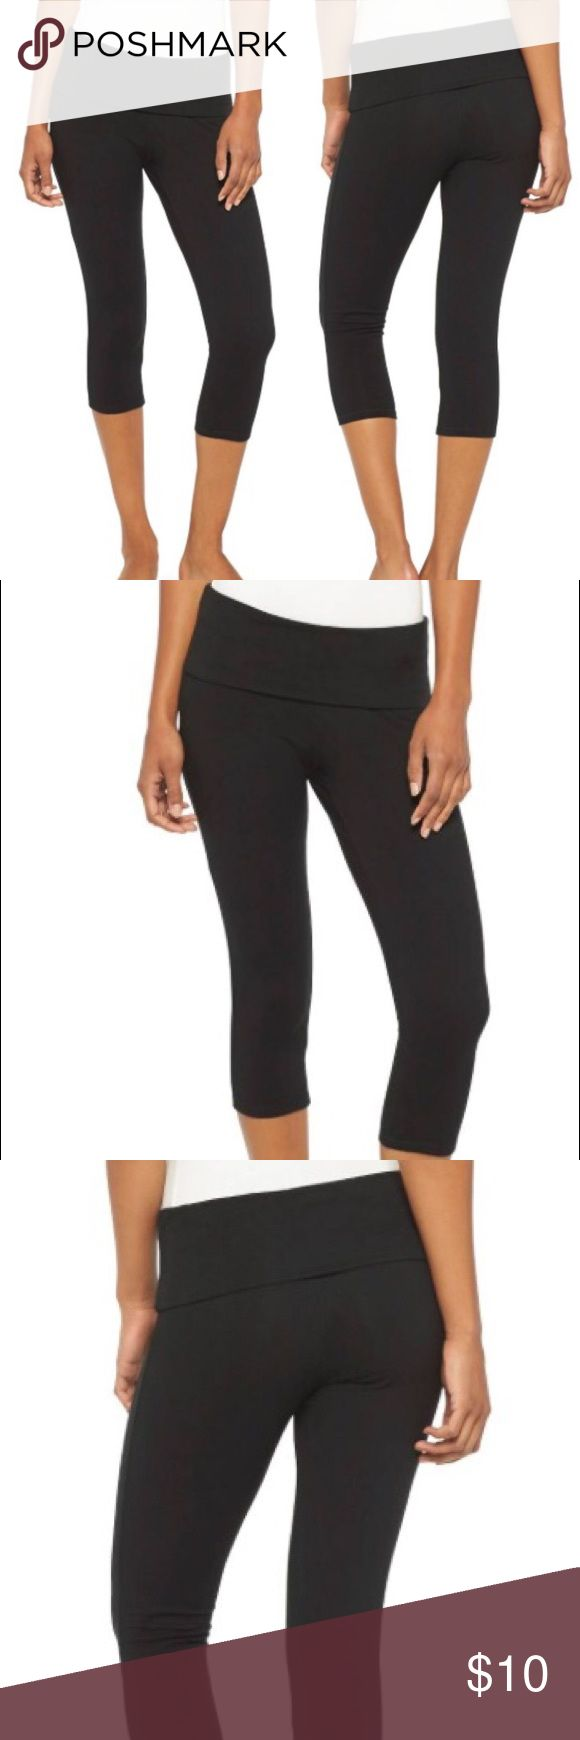 Mossimo fold over yoga capris Great capris for yoga or any work out. I have about 5 of these Mossimo Supply Co Pants Capris